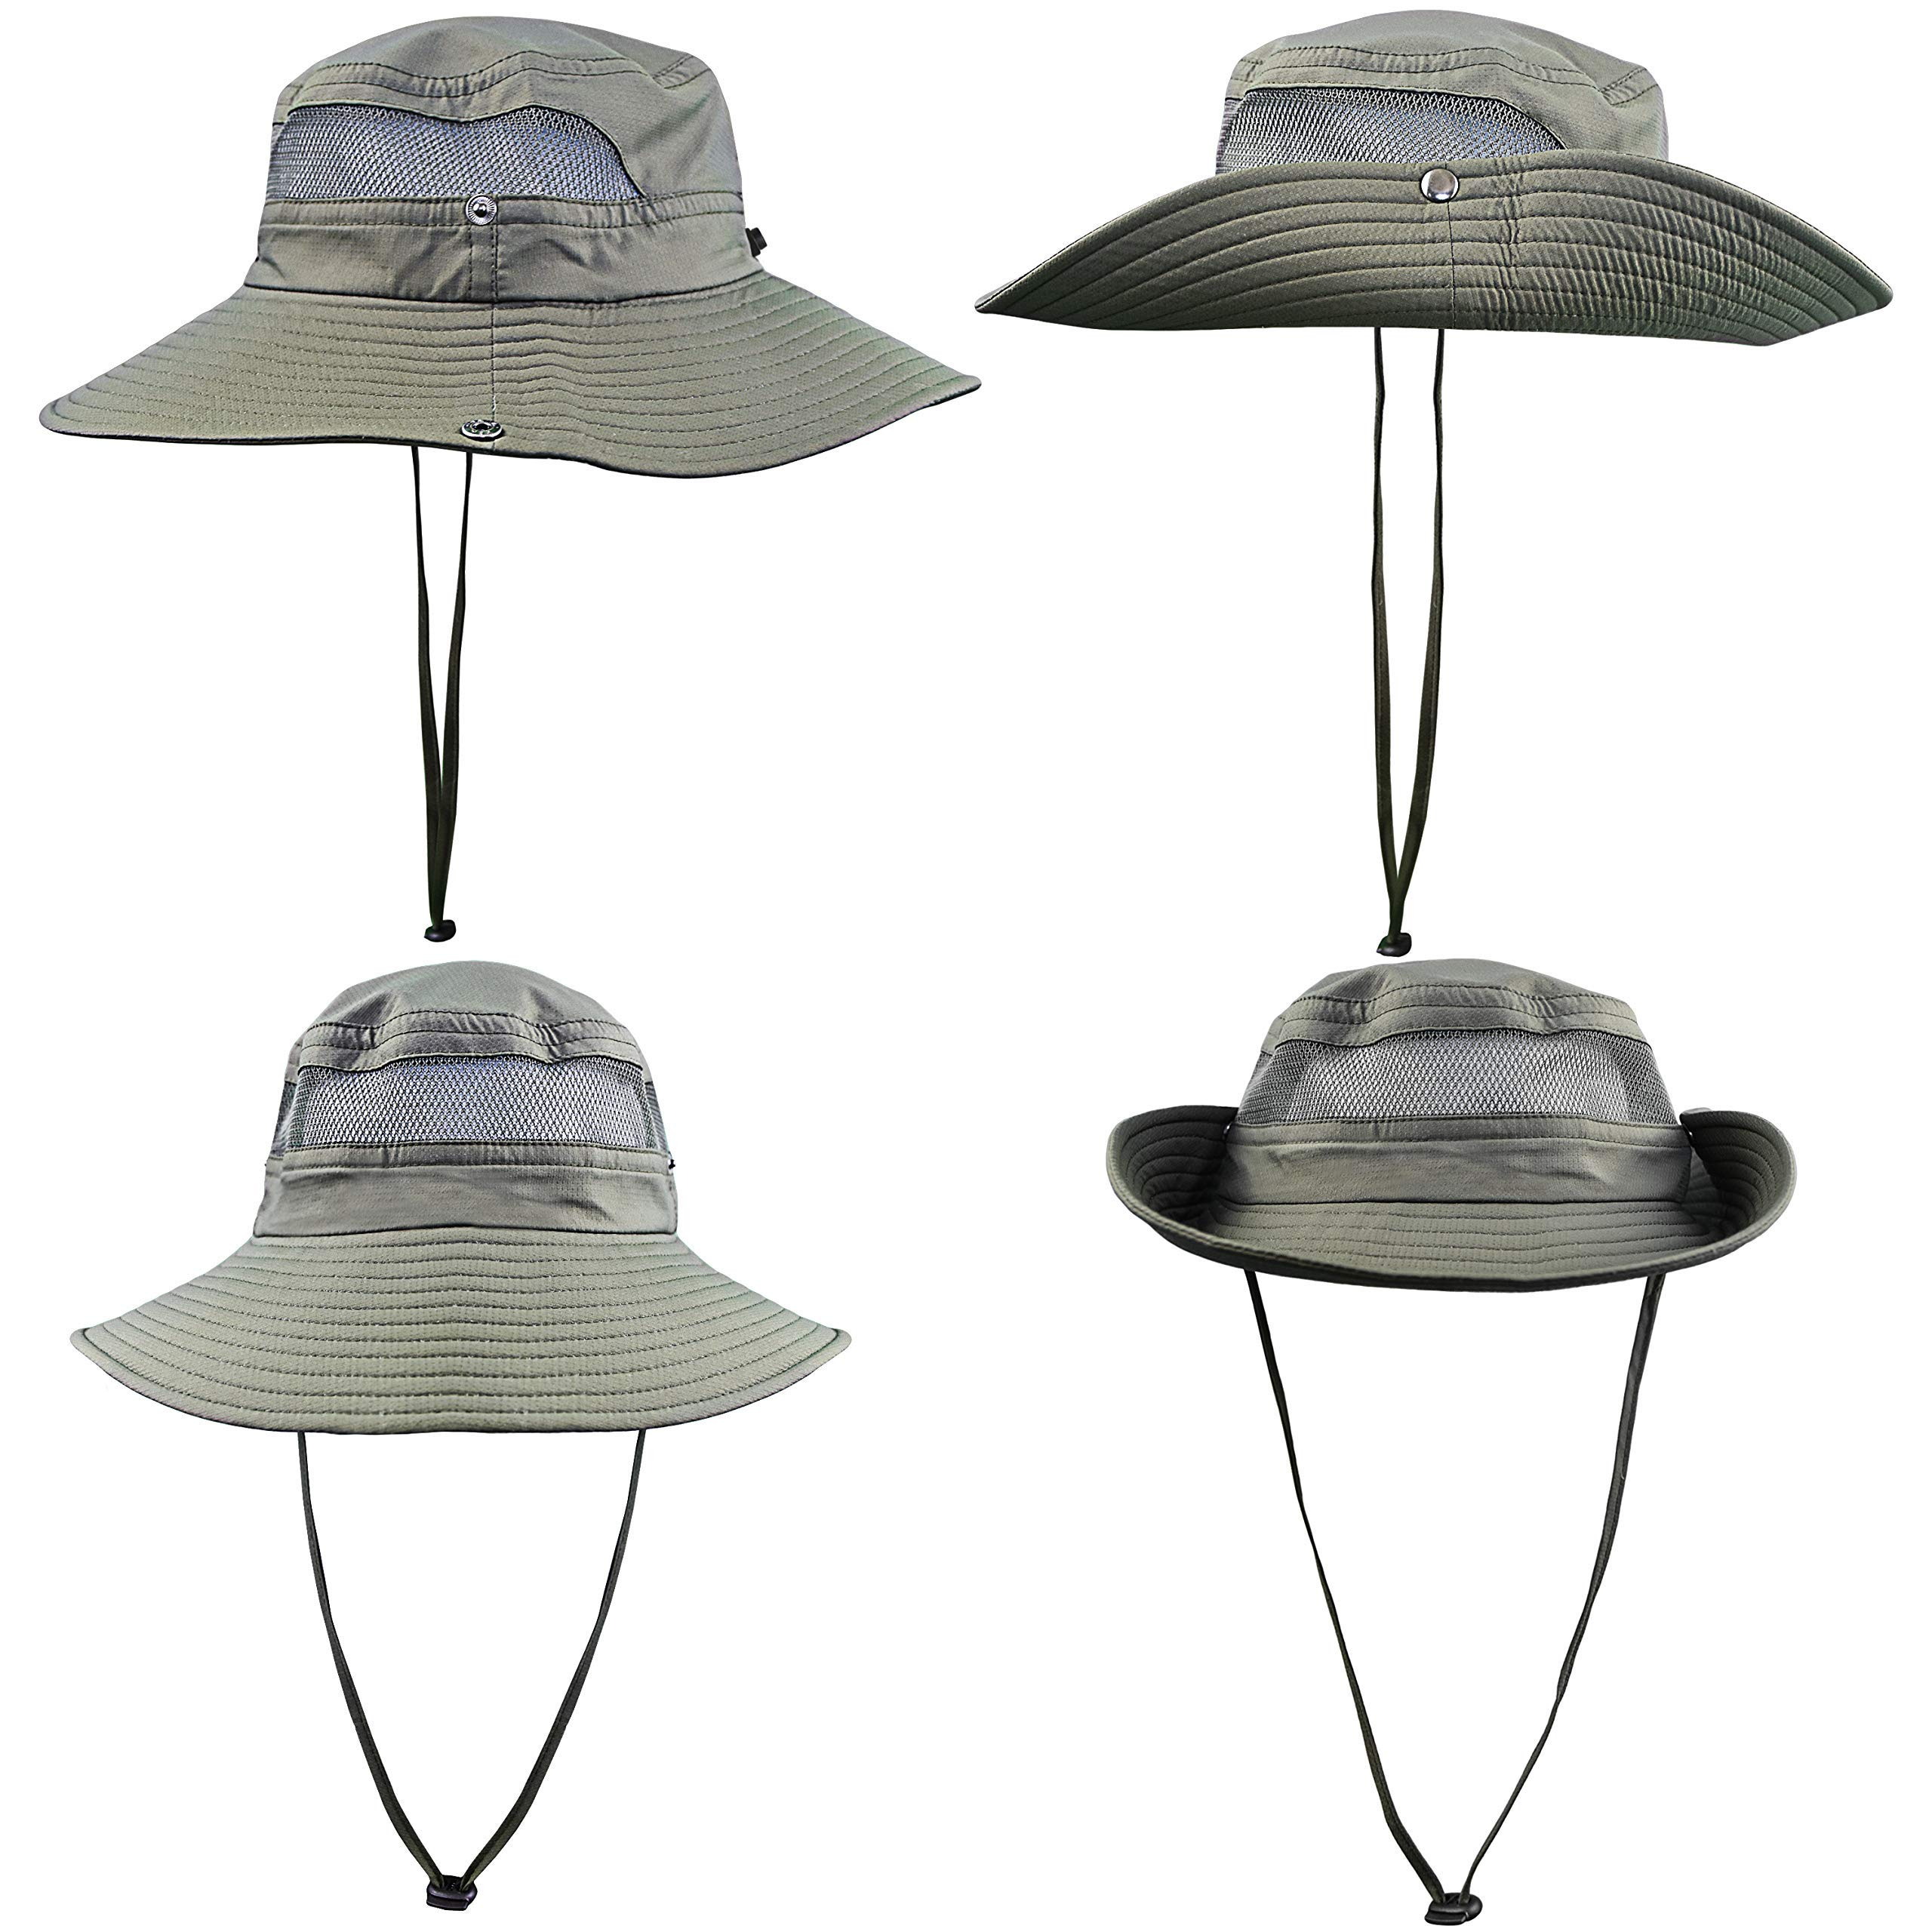 Fishing Hat Safari Cap with Sun Protection for Men and Women (Army Green) by GearTOP (Image #7)